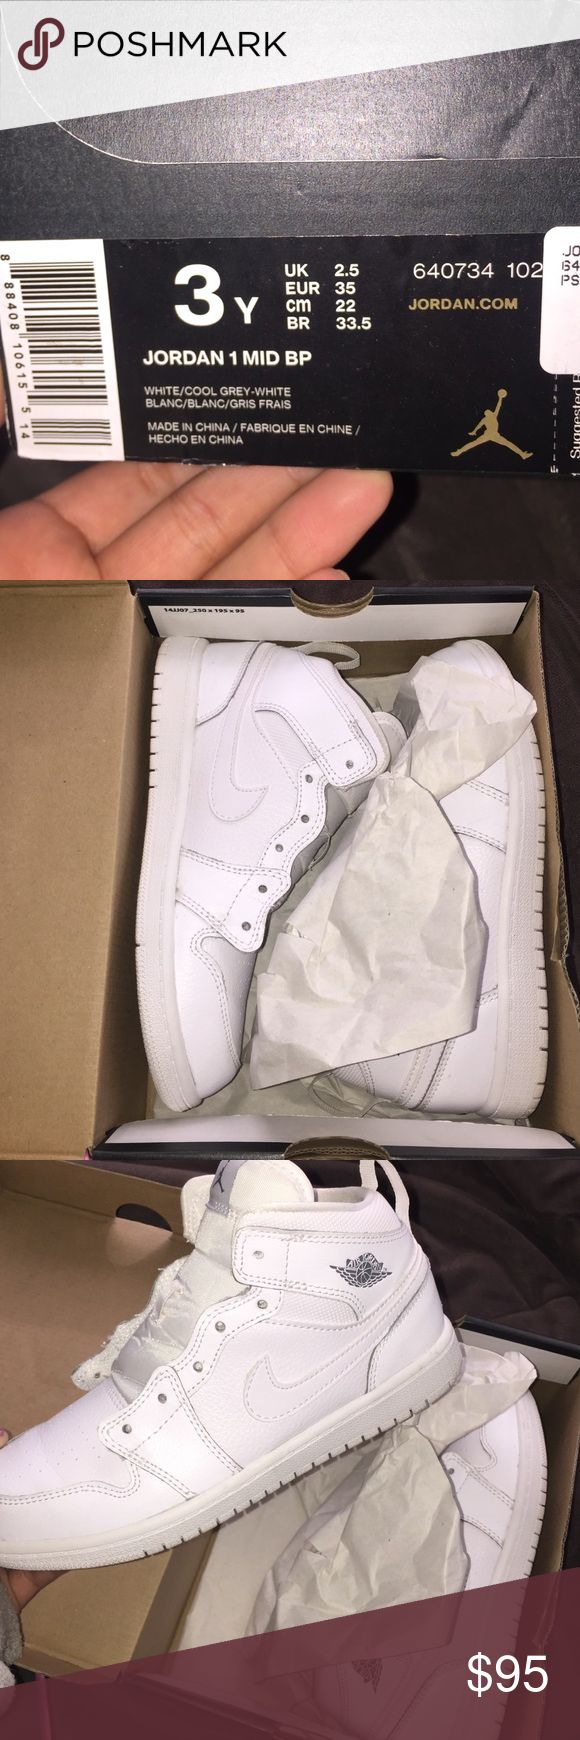 All white Jordan 1 Mid Bp's Brand new , worn once. Selling because they do not fit me anymore. Do not have shoe laces but I'm willing to give them with a pair of laces. Jordan Shoes Sneakers